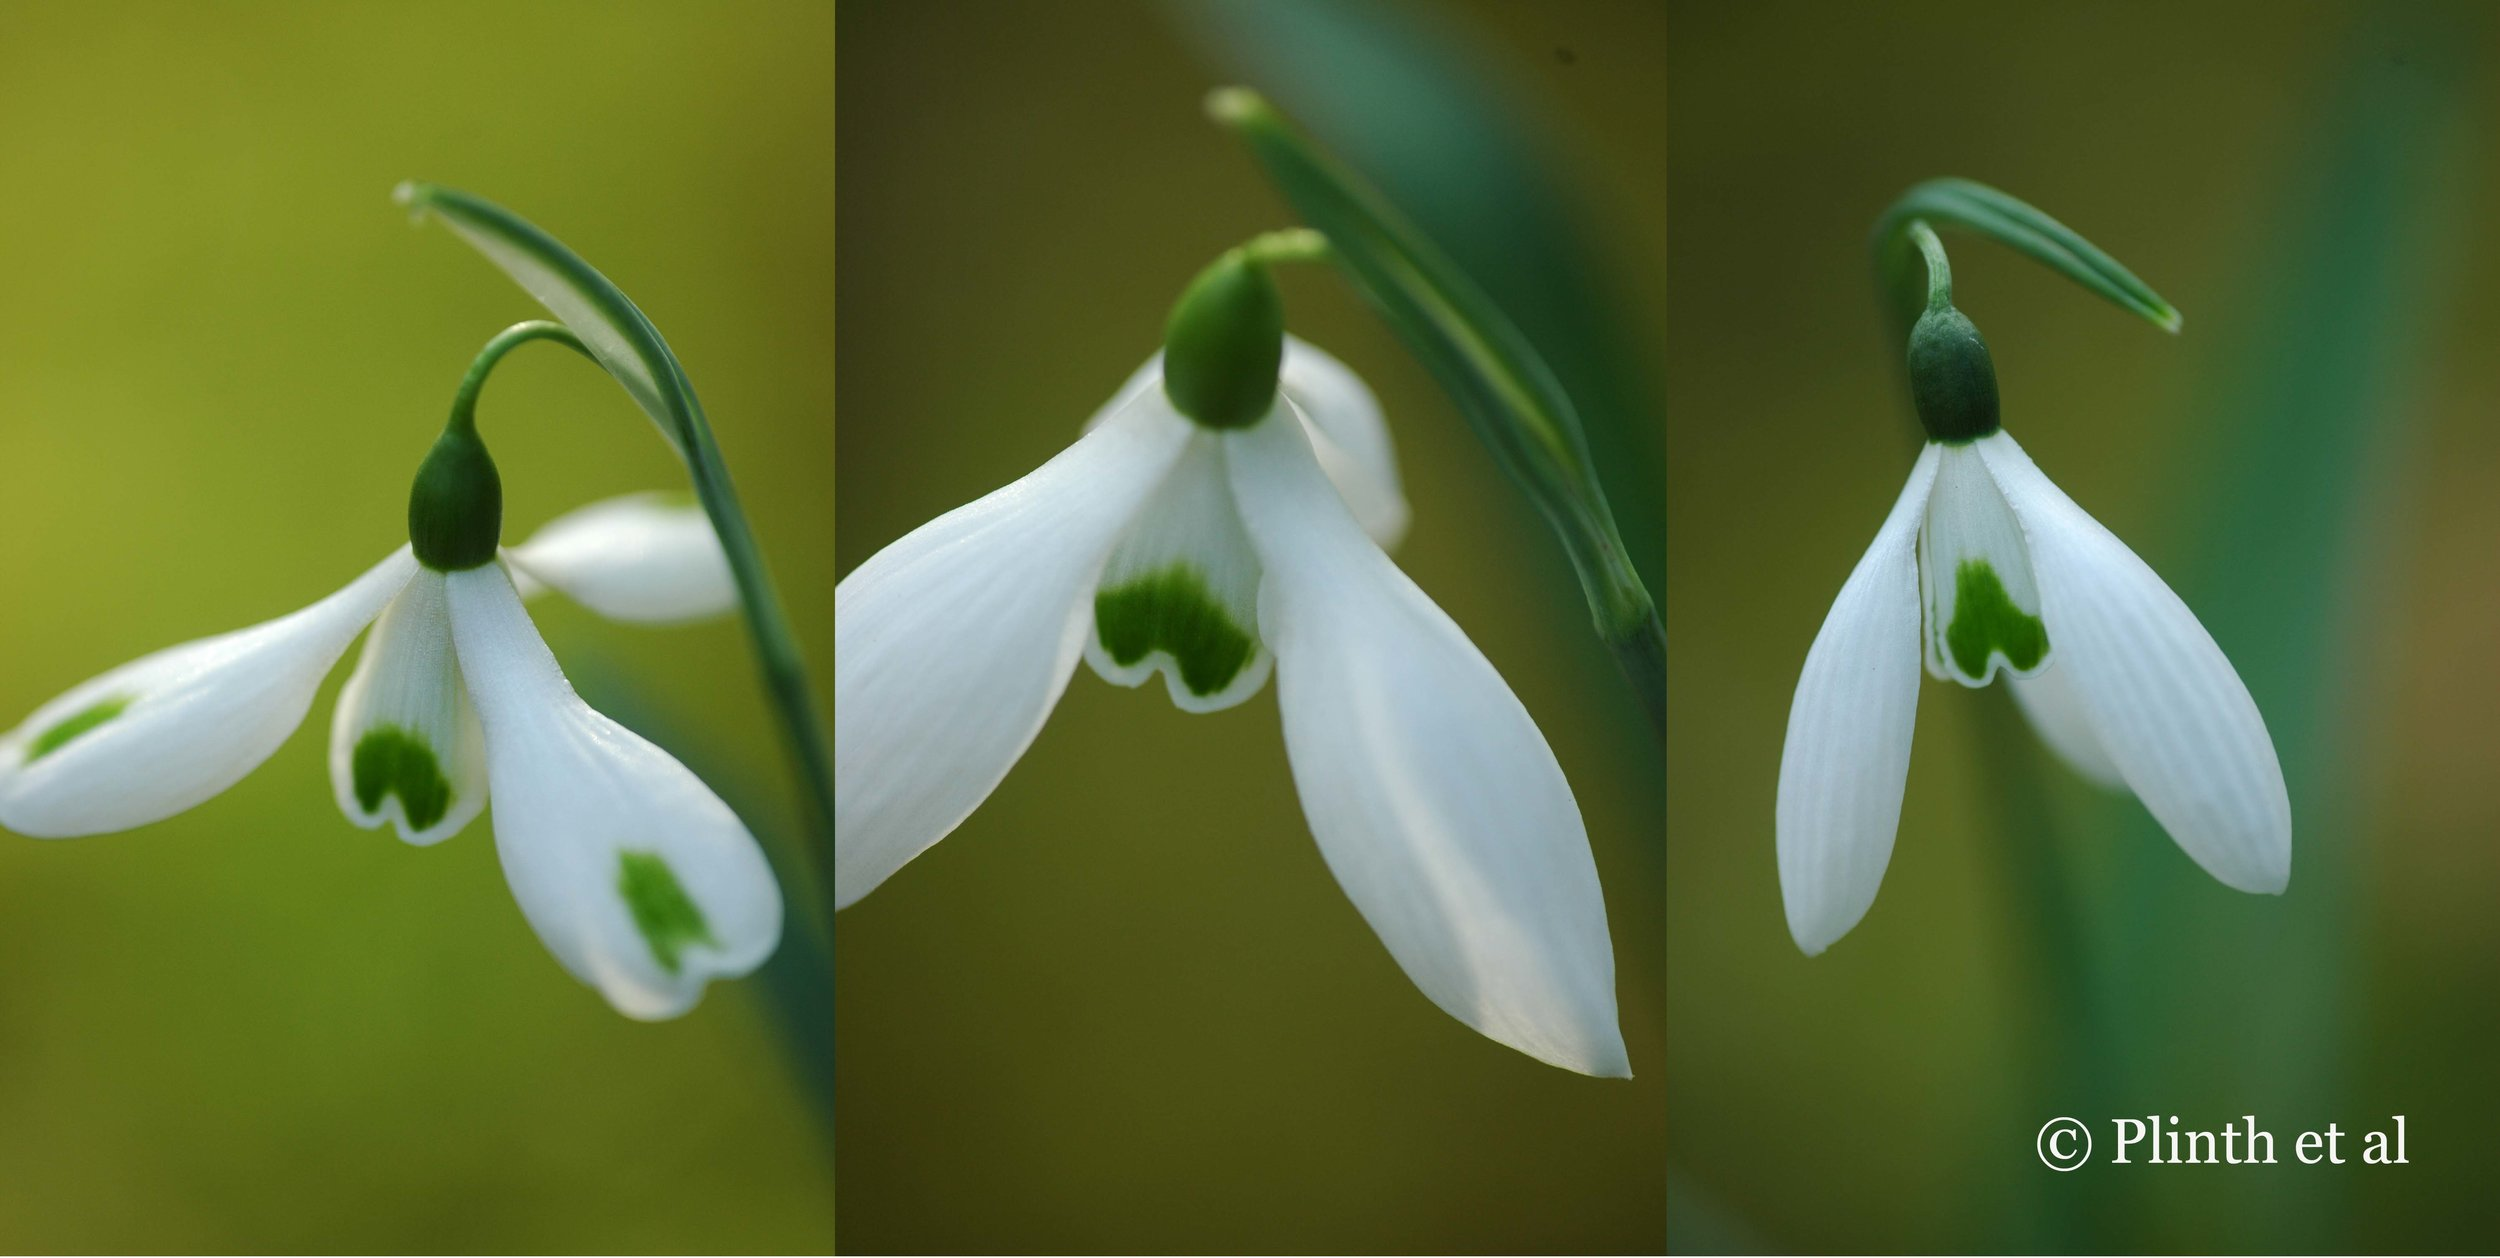 The green markings in the inner segments of snowdrops (sometimes on the outer parts too) are like tattoos.